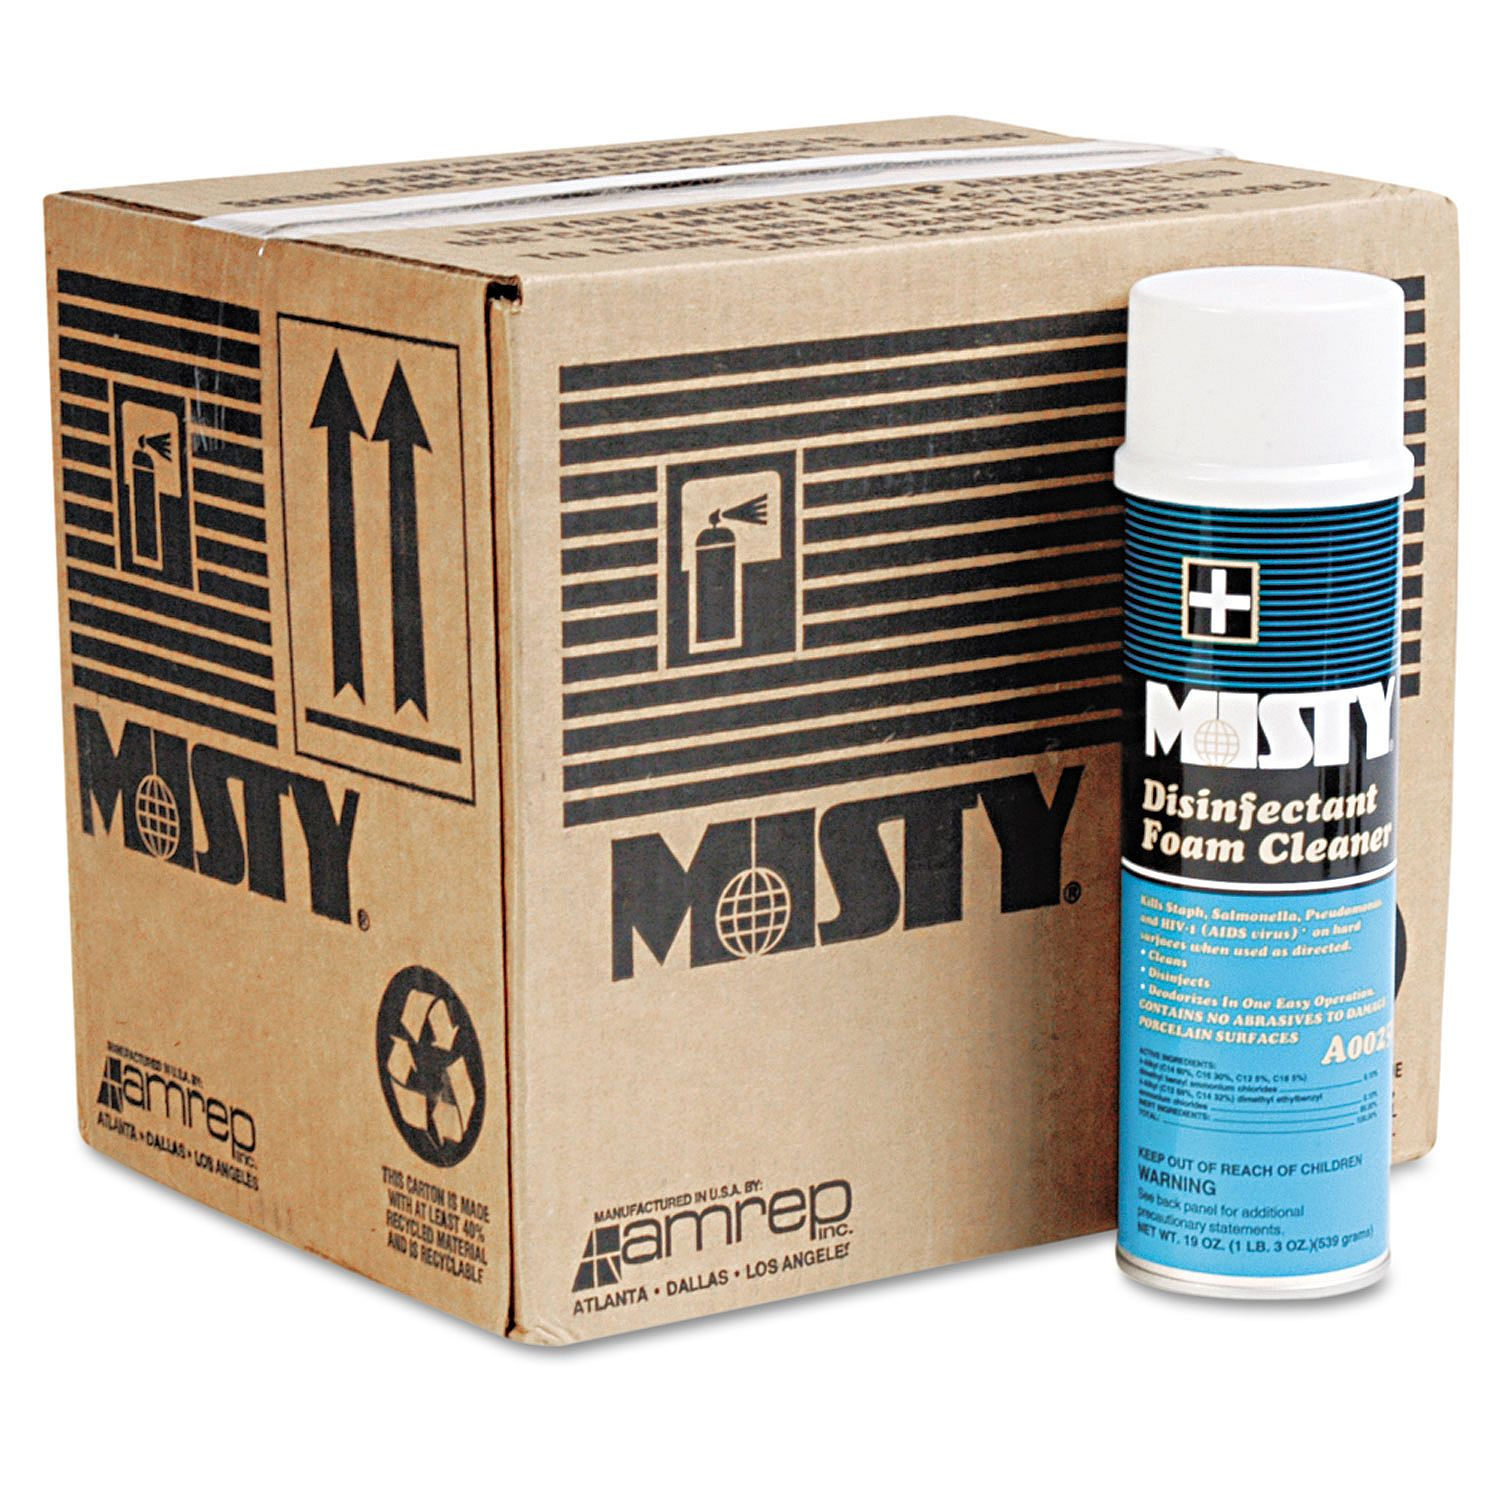 Misty Disinfectant Foam Cleaner Eastman Products